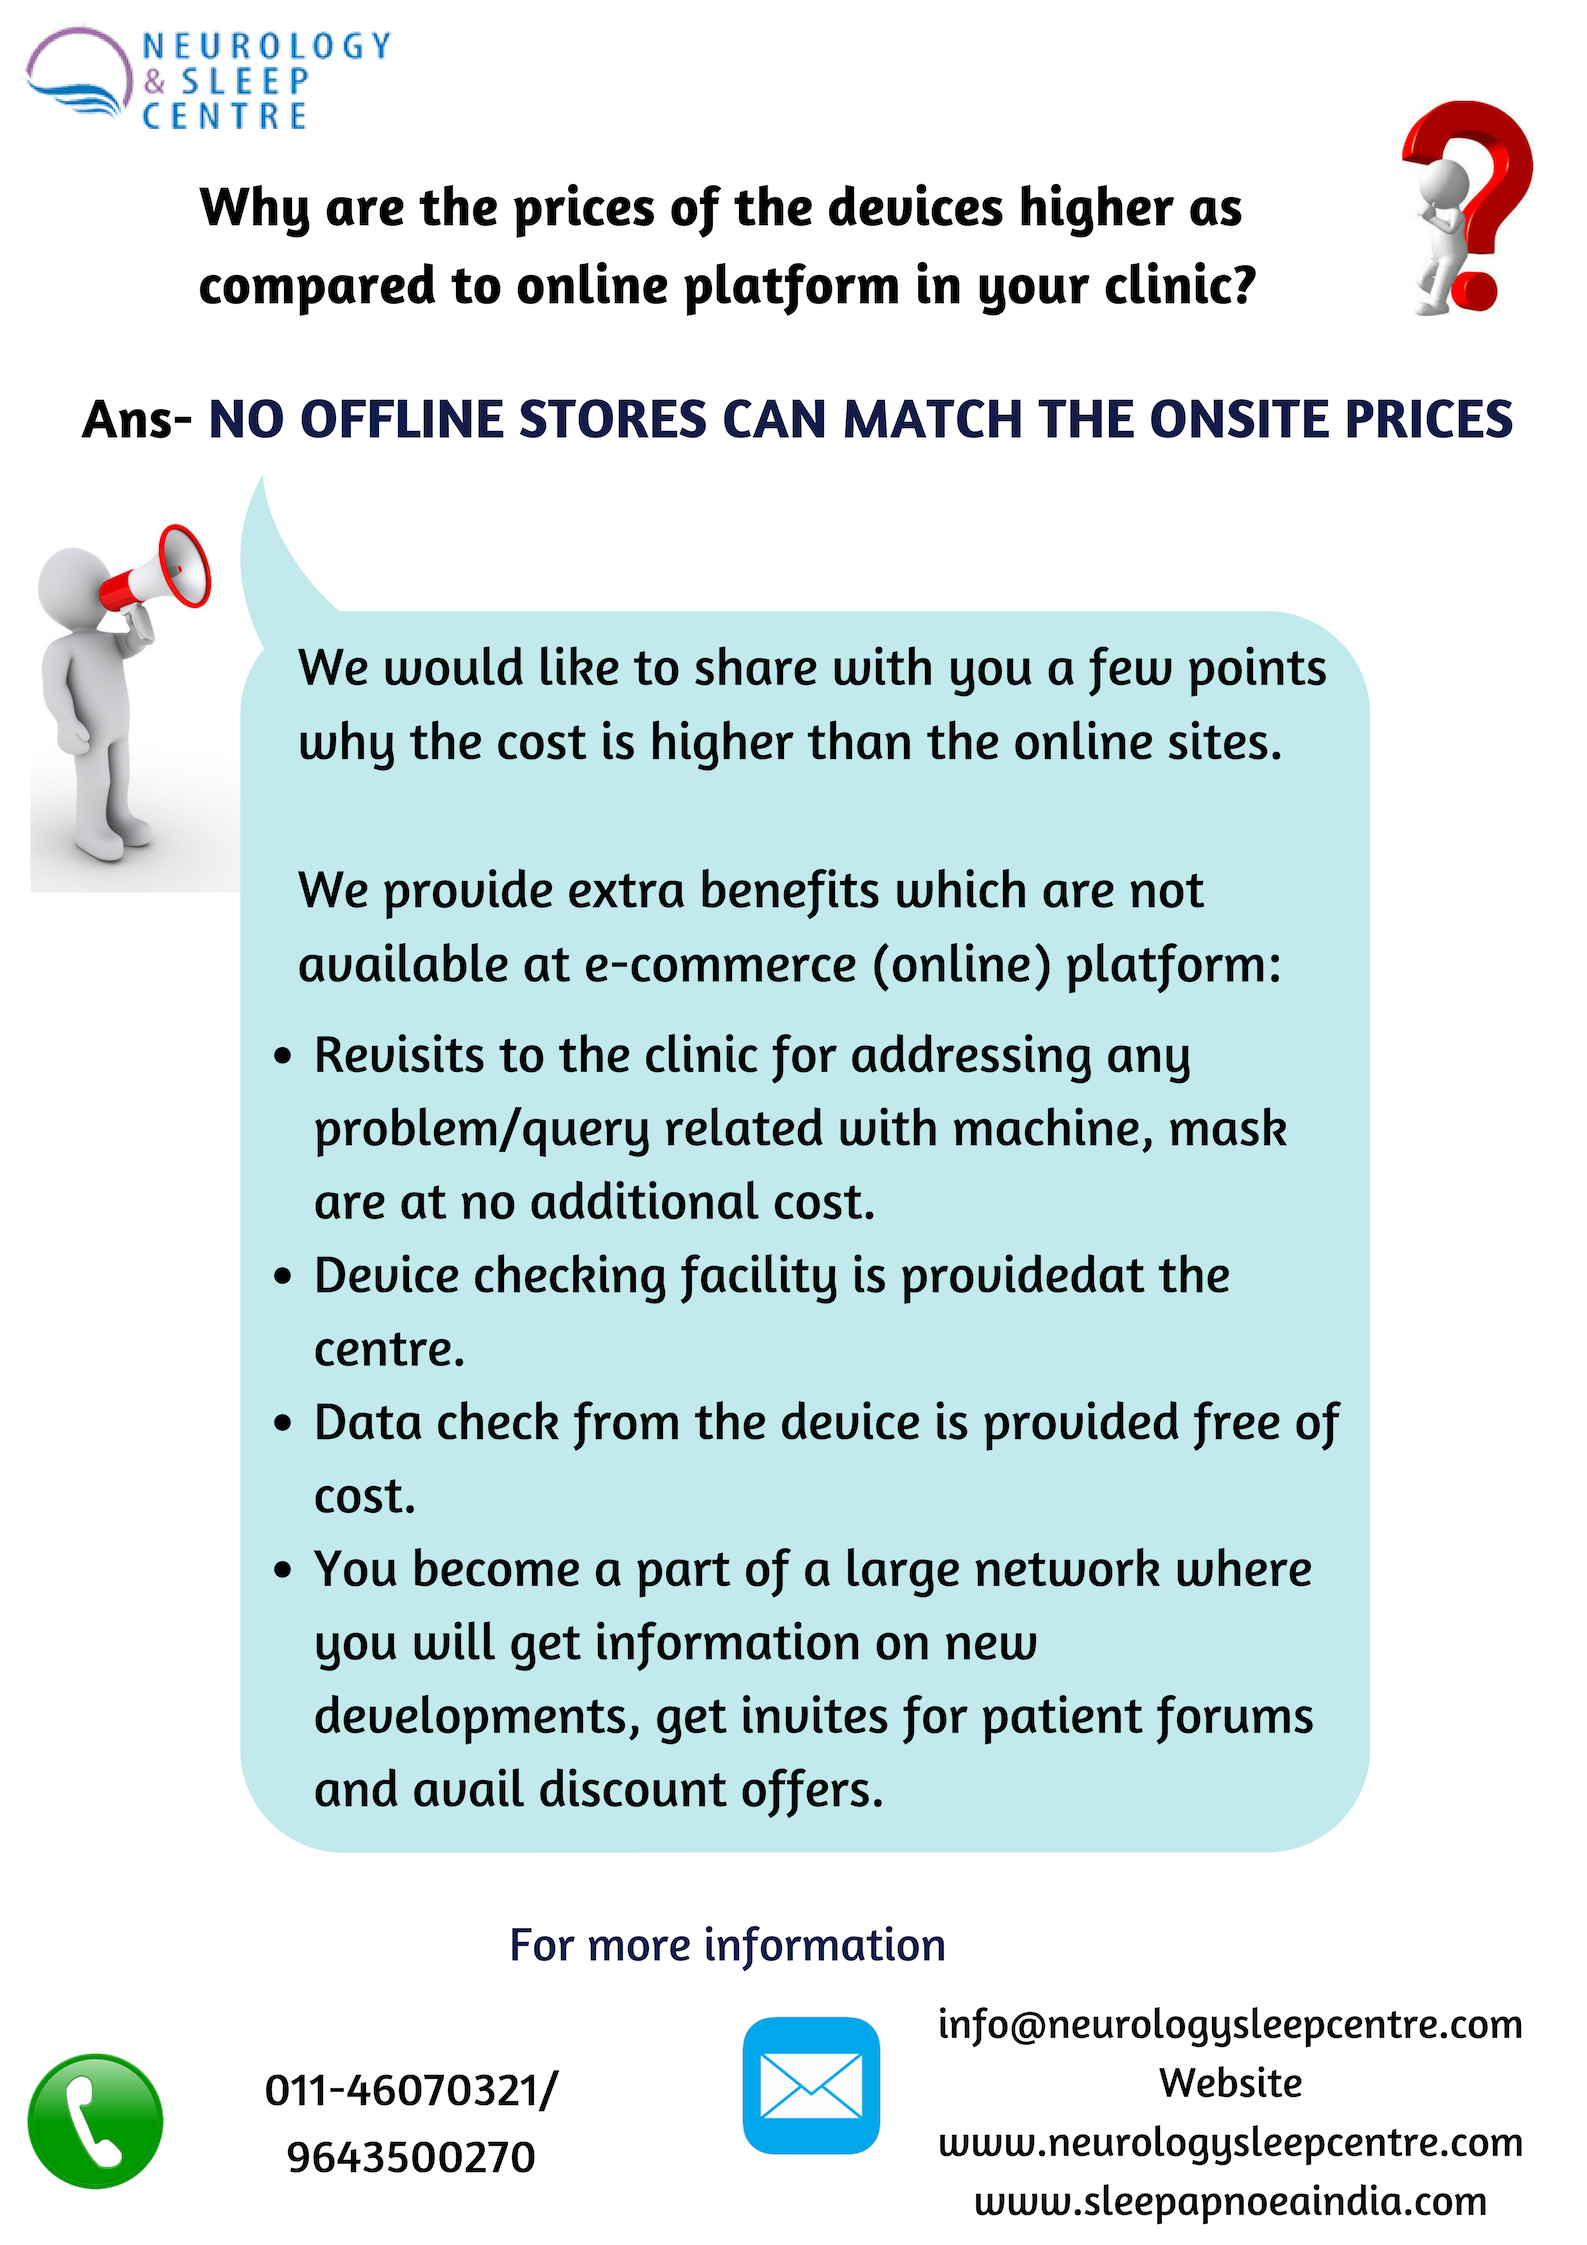 Offline Stores cannot match with the Online Prices- Blog by